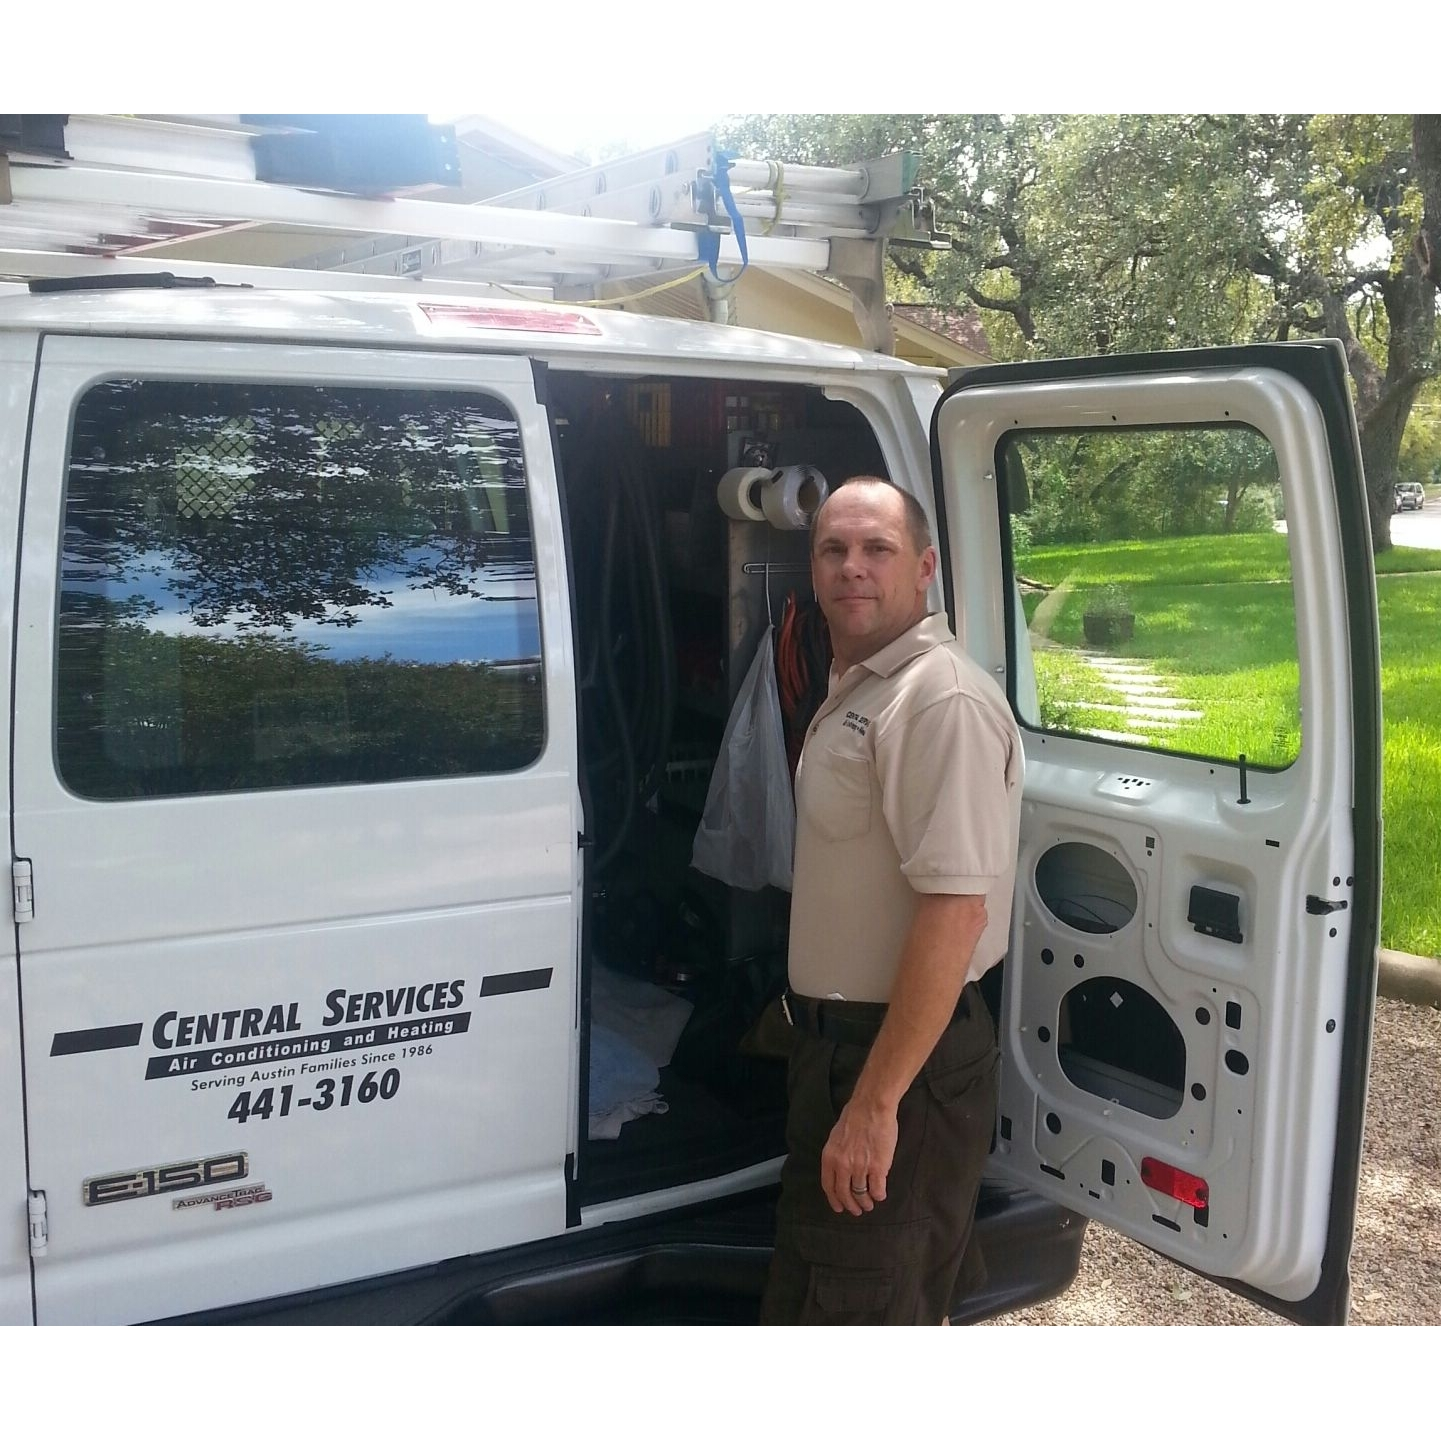 Central Services A/C & Heating